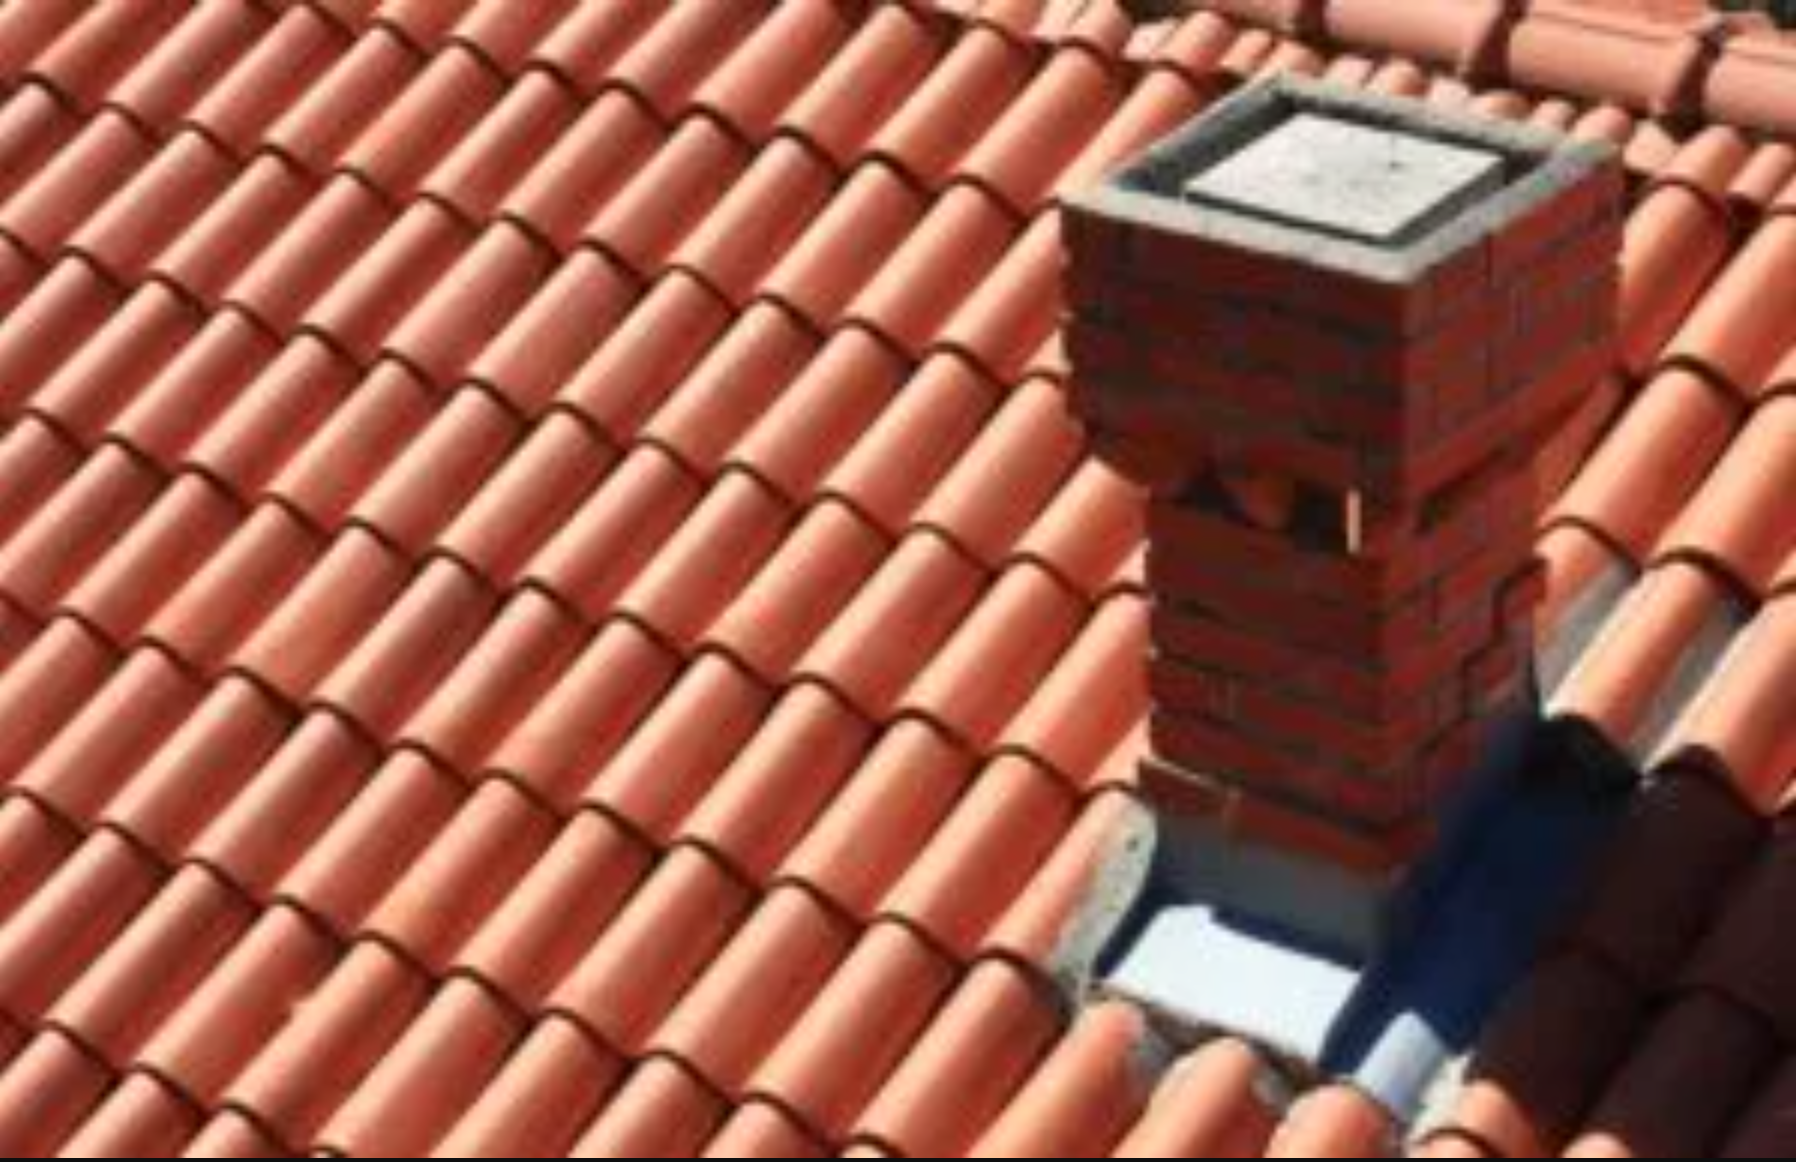 How to Find and Identify Roof Leaks